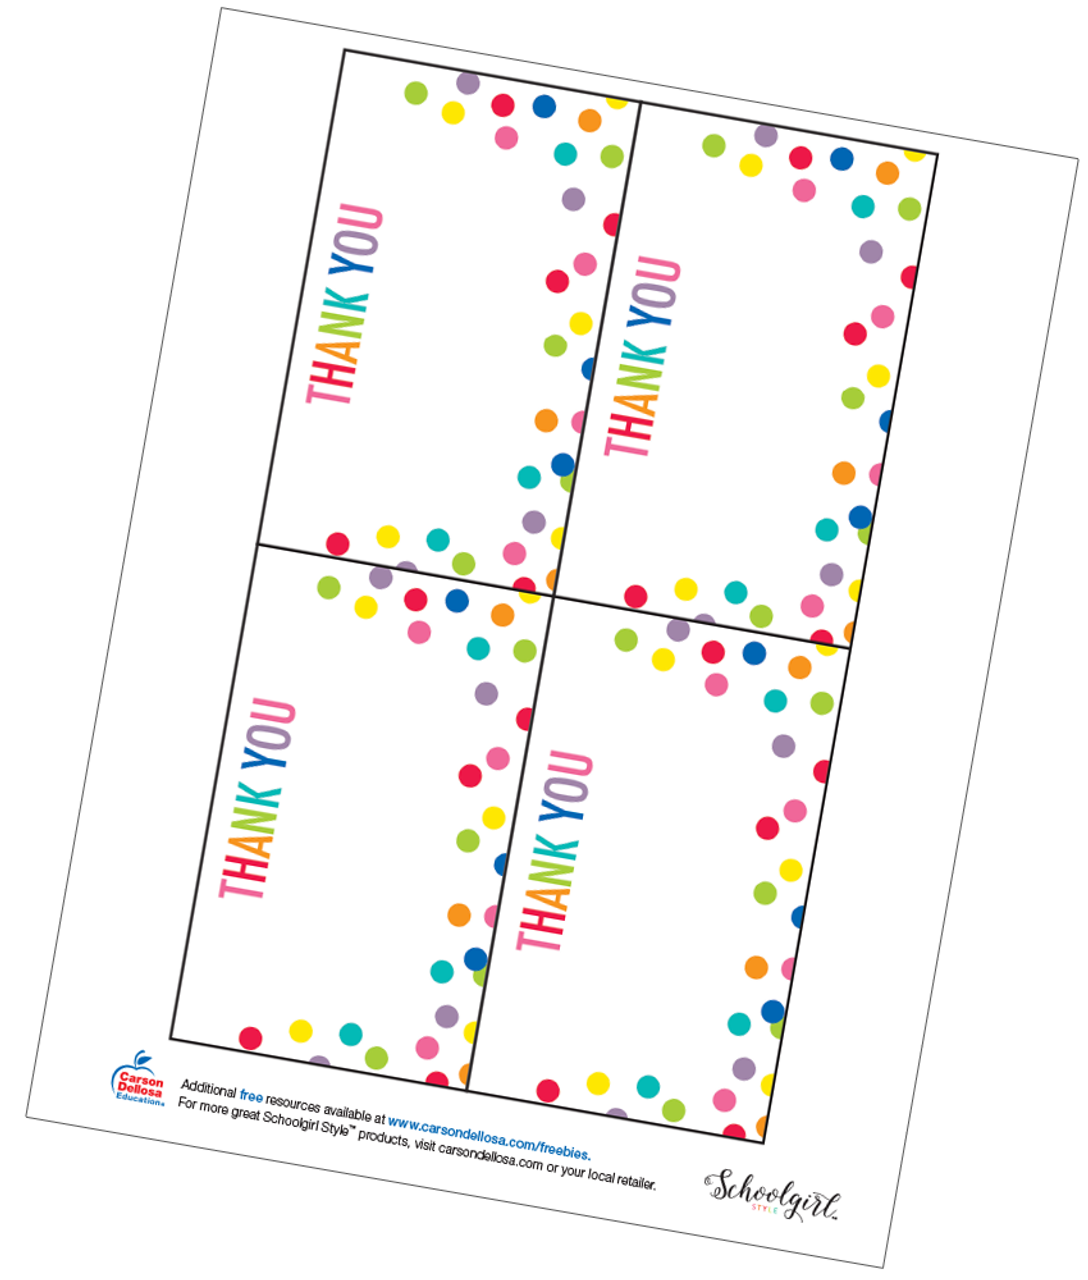 photograph about Thank You Card Printable known as Schoolgirl Design and style: Confetti Thank On your own Playing cards Totally free Printable